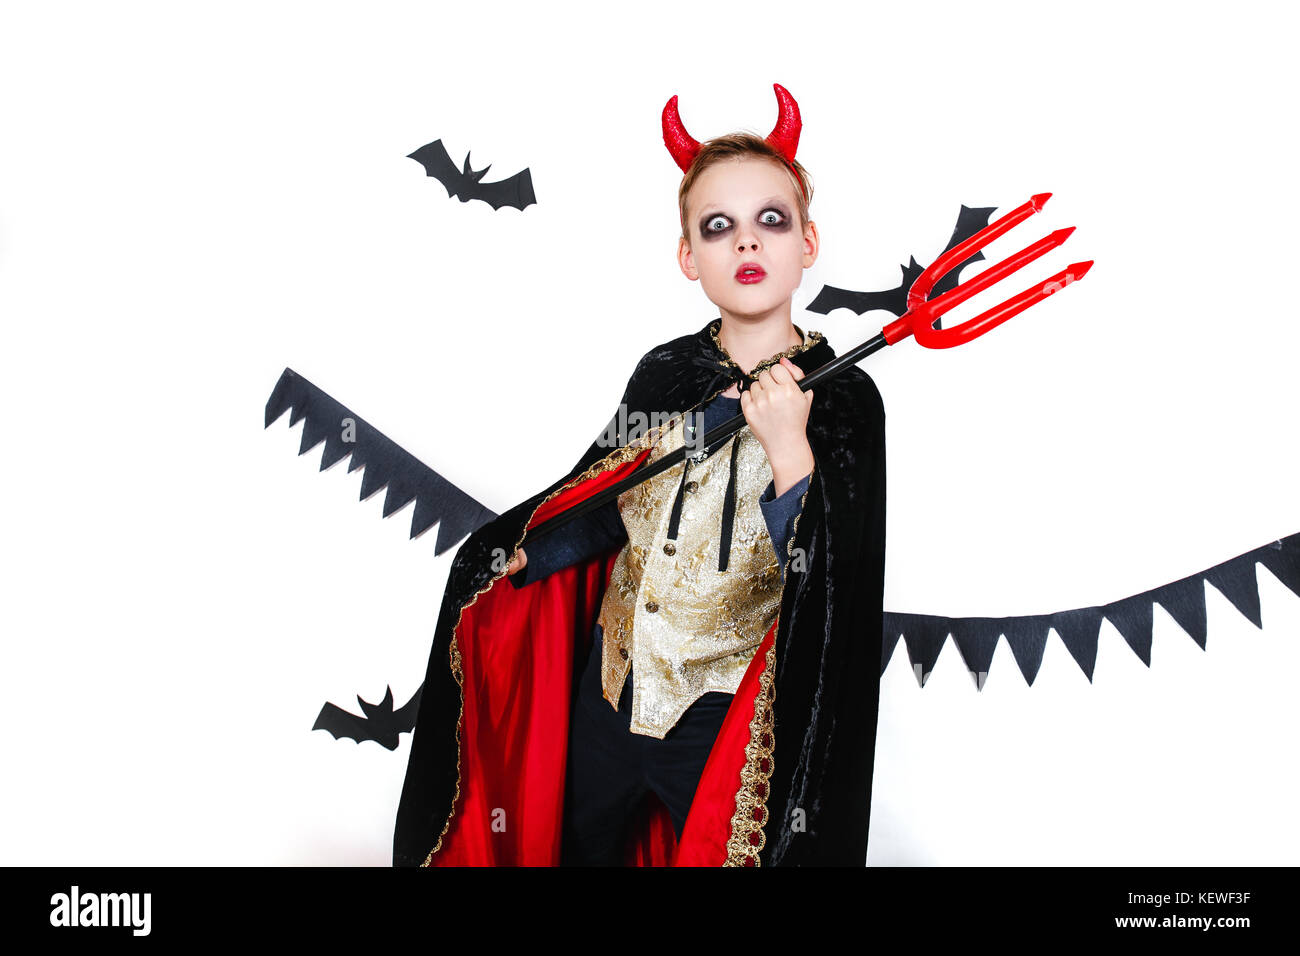 holiday halloween. funny child in carnival costumes devil on a white background - Stock Image  sc 1 st  Alamy & Doll Costumes Stock Photos u0026 Doll Costumes Stock Images - Alamy